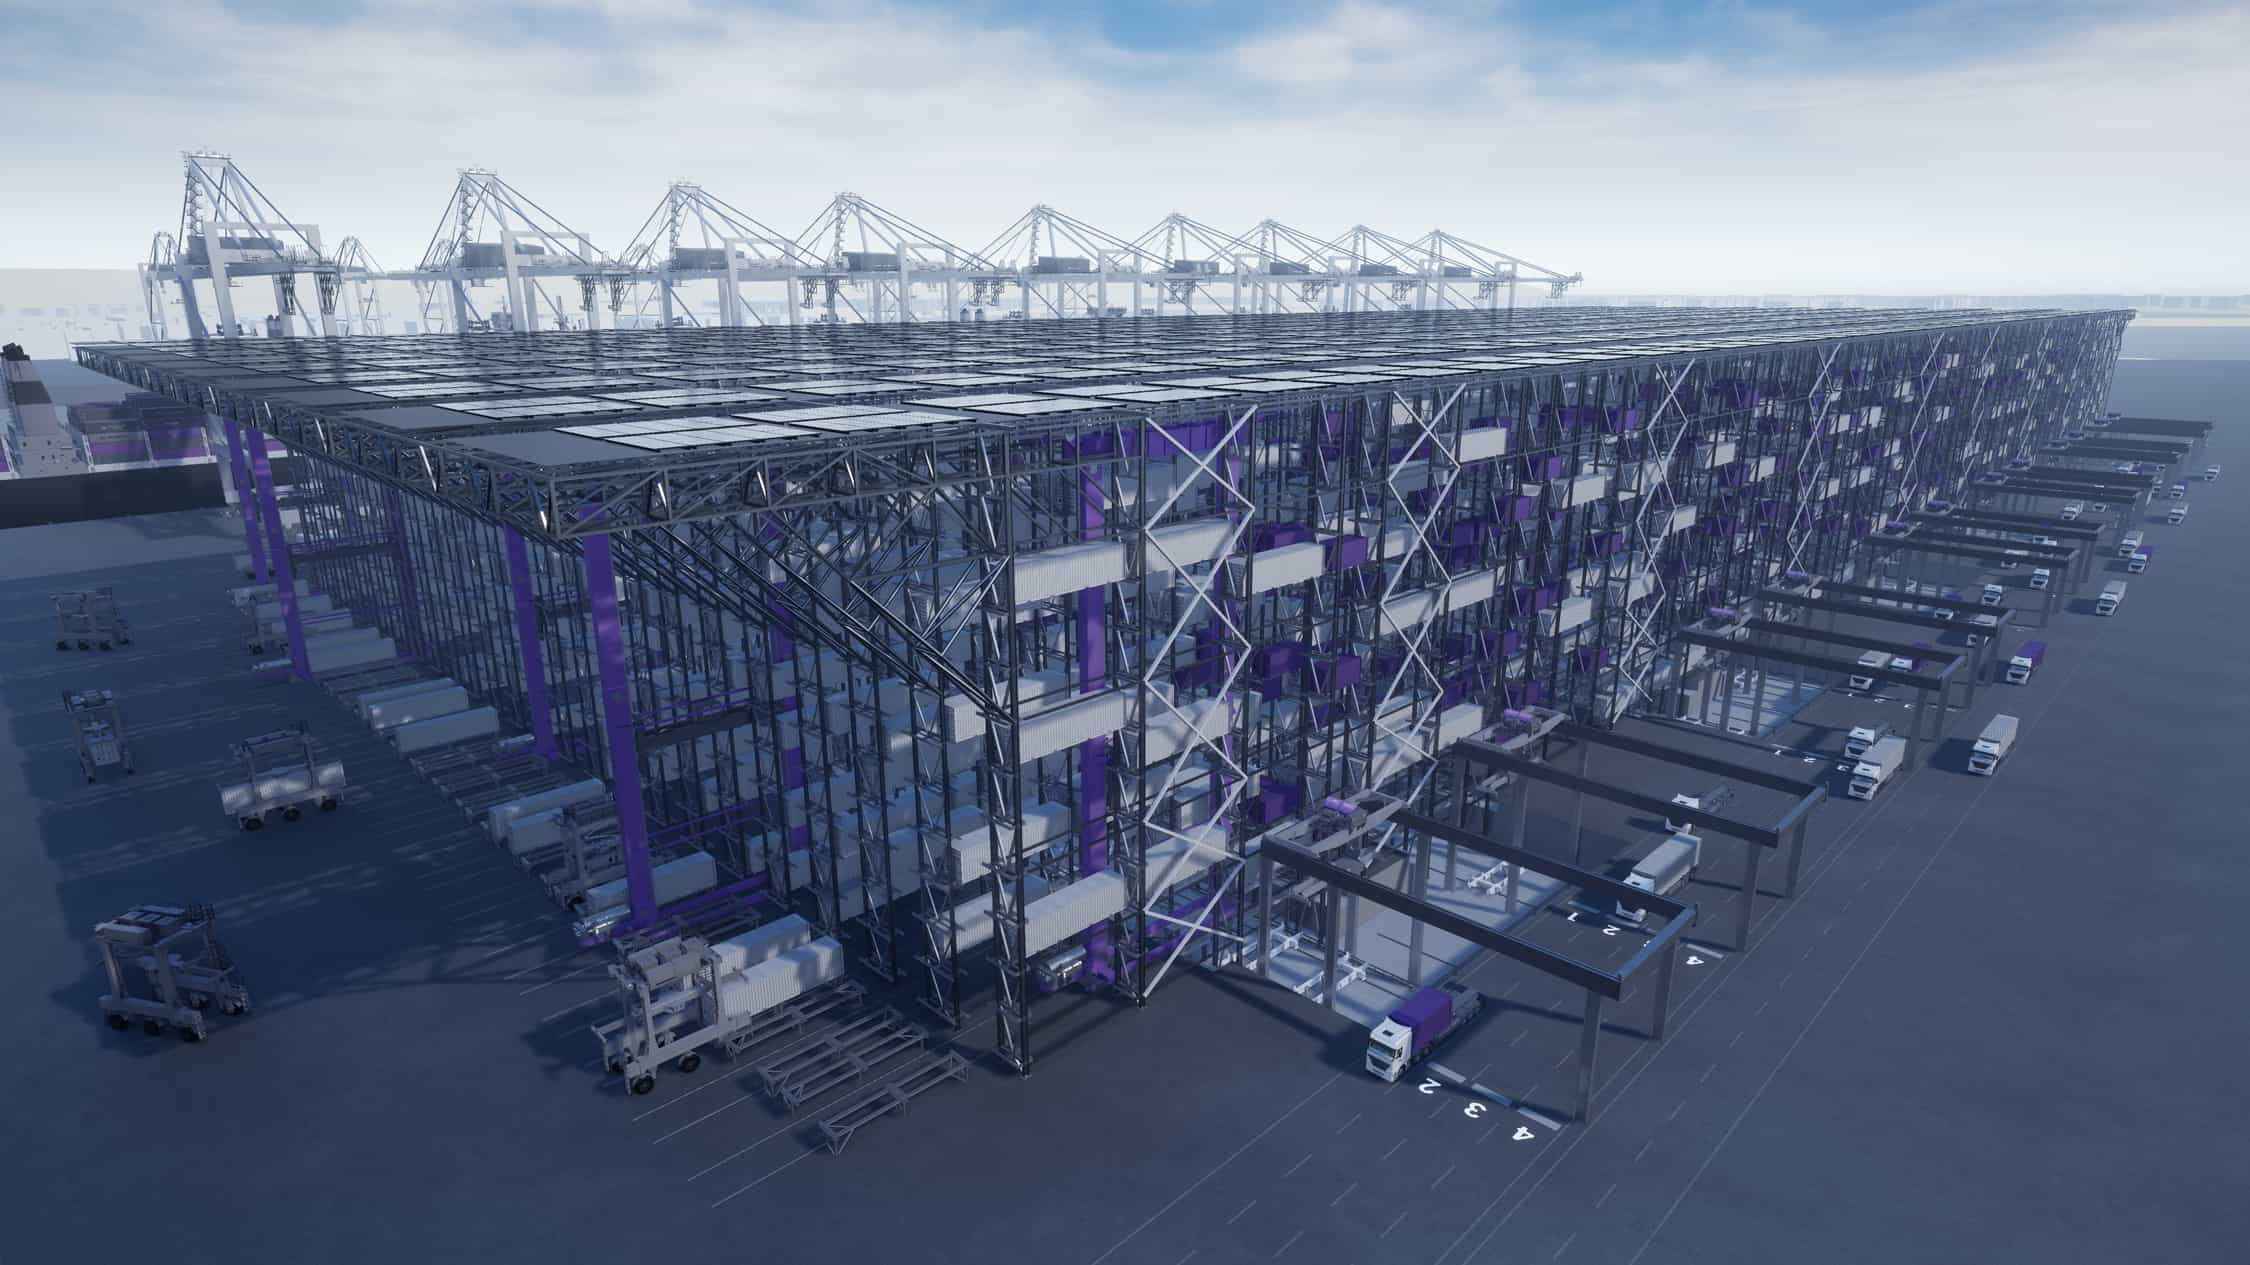 DP World and SMS Group launch high bay container storage system 'Boxbay'